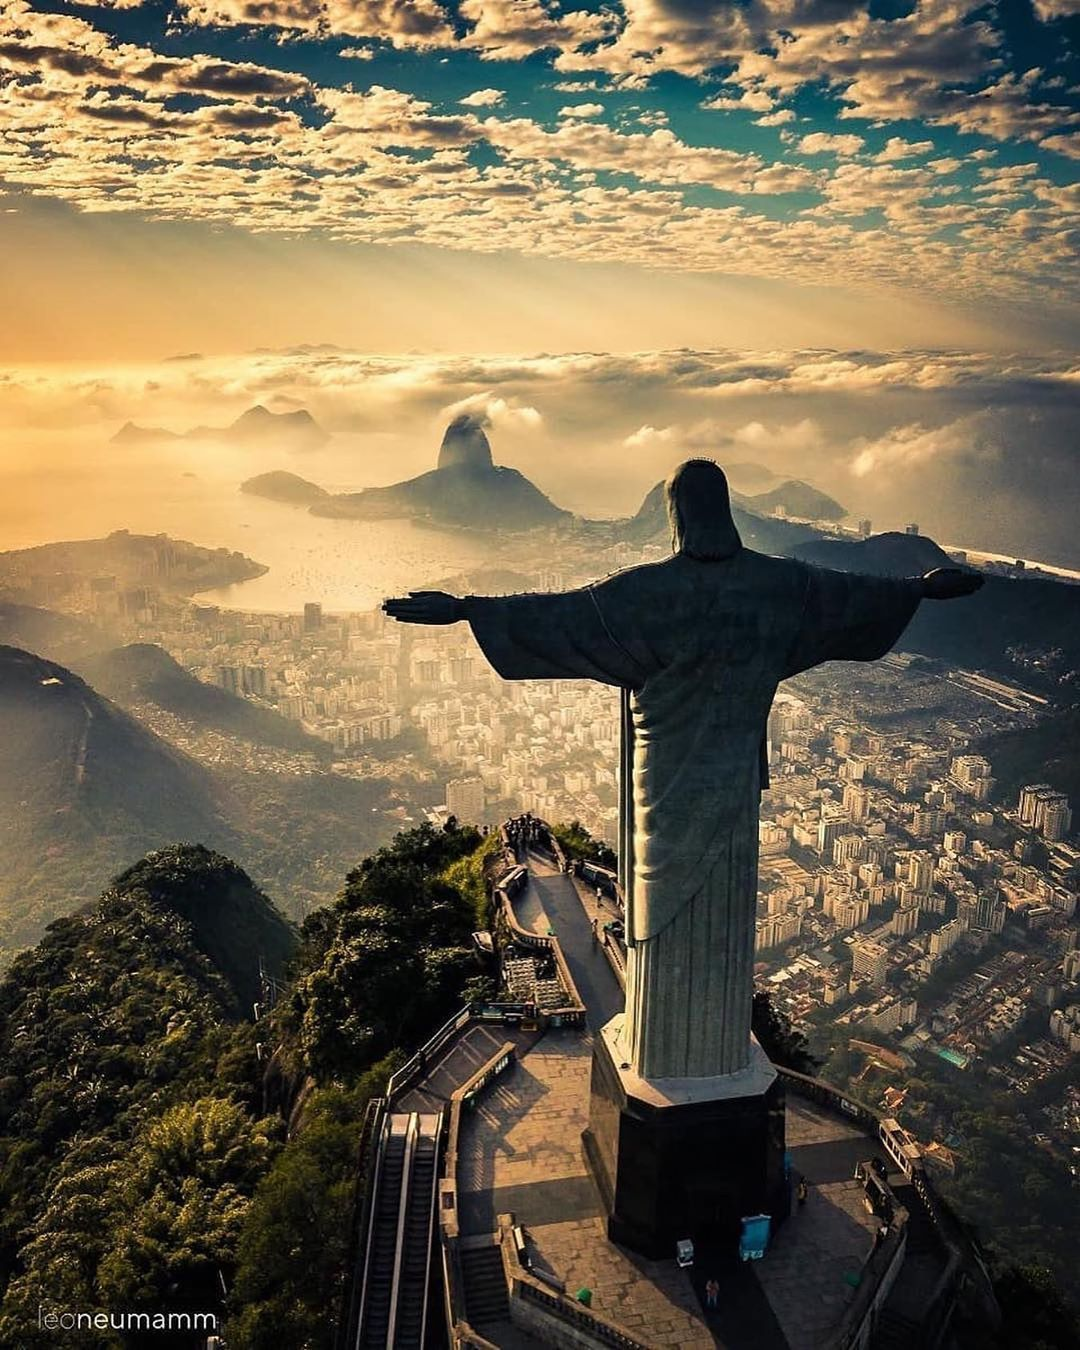 CHRIST THE REDEEMER STATUE BRAZIL GLOSSY POSTER PICTURE PHOTO jesus rio great 21